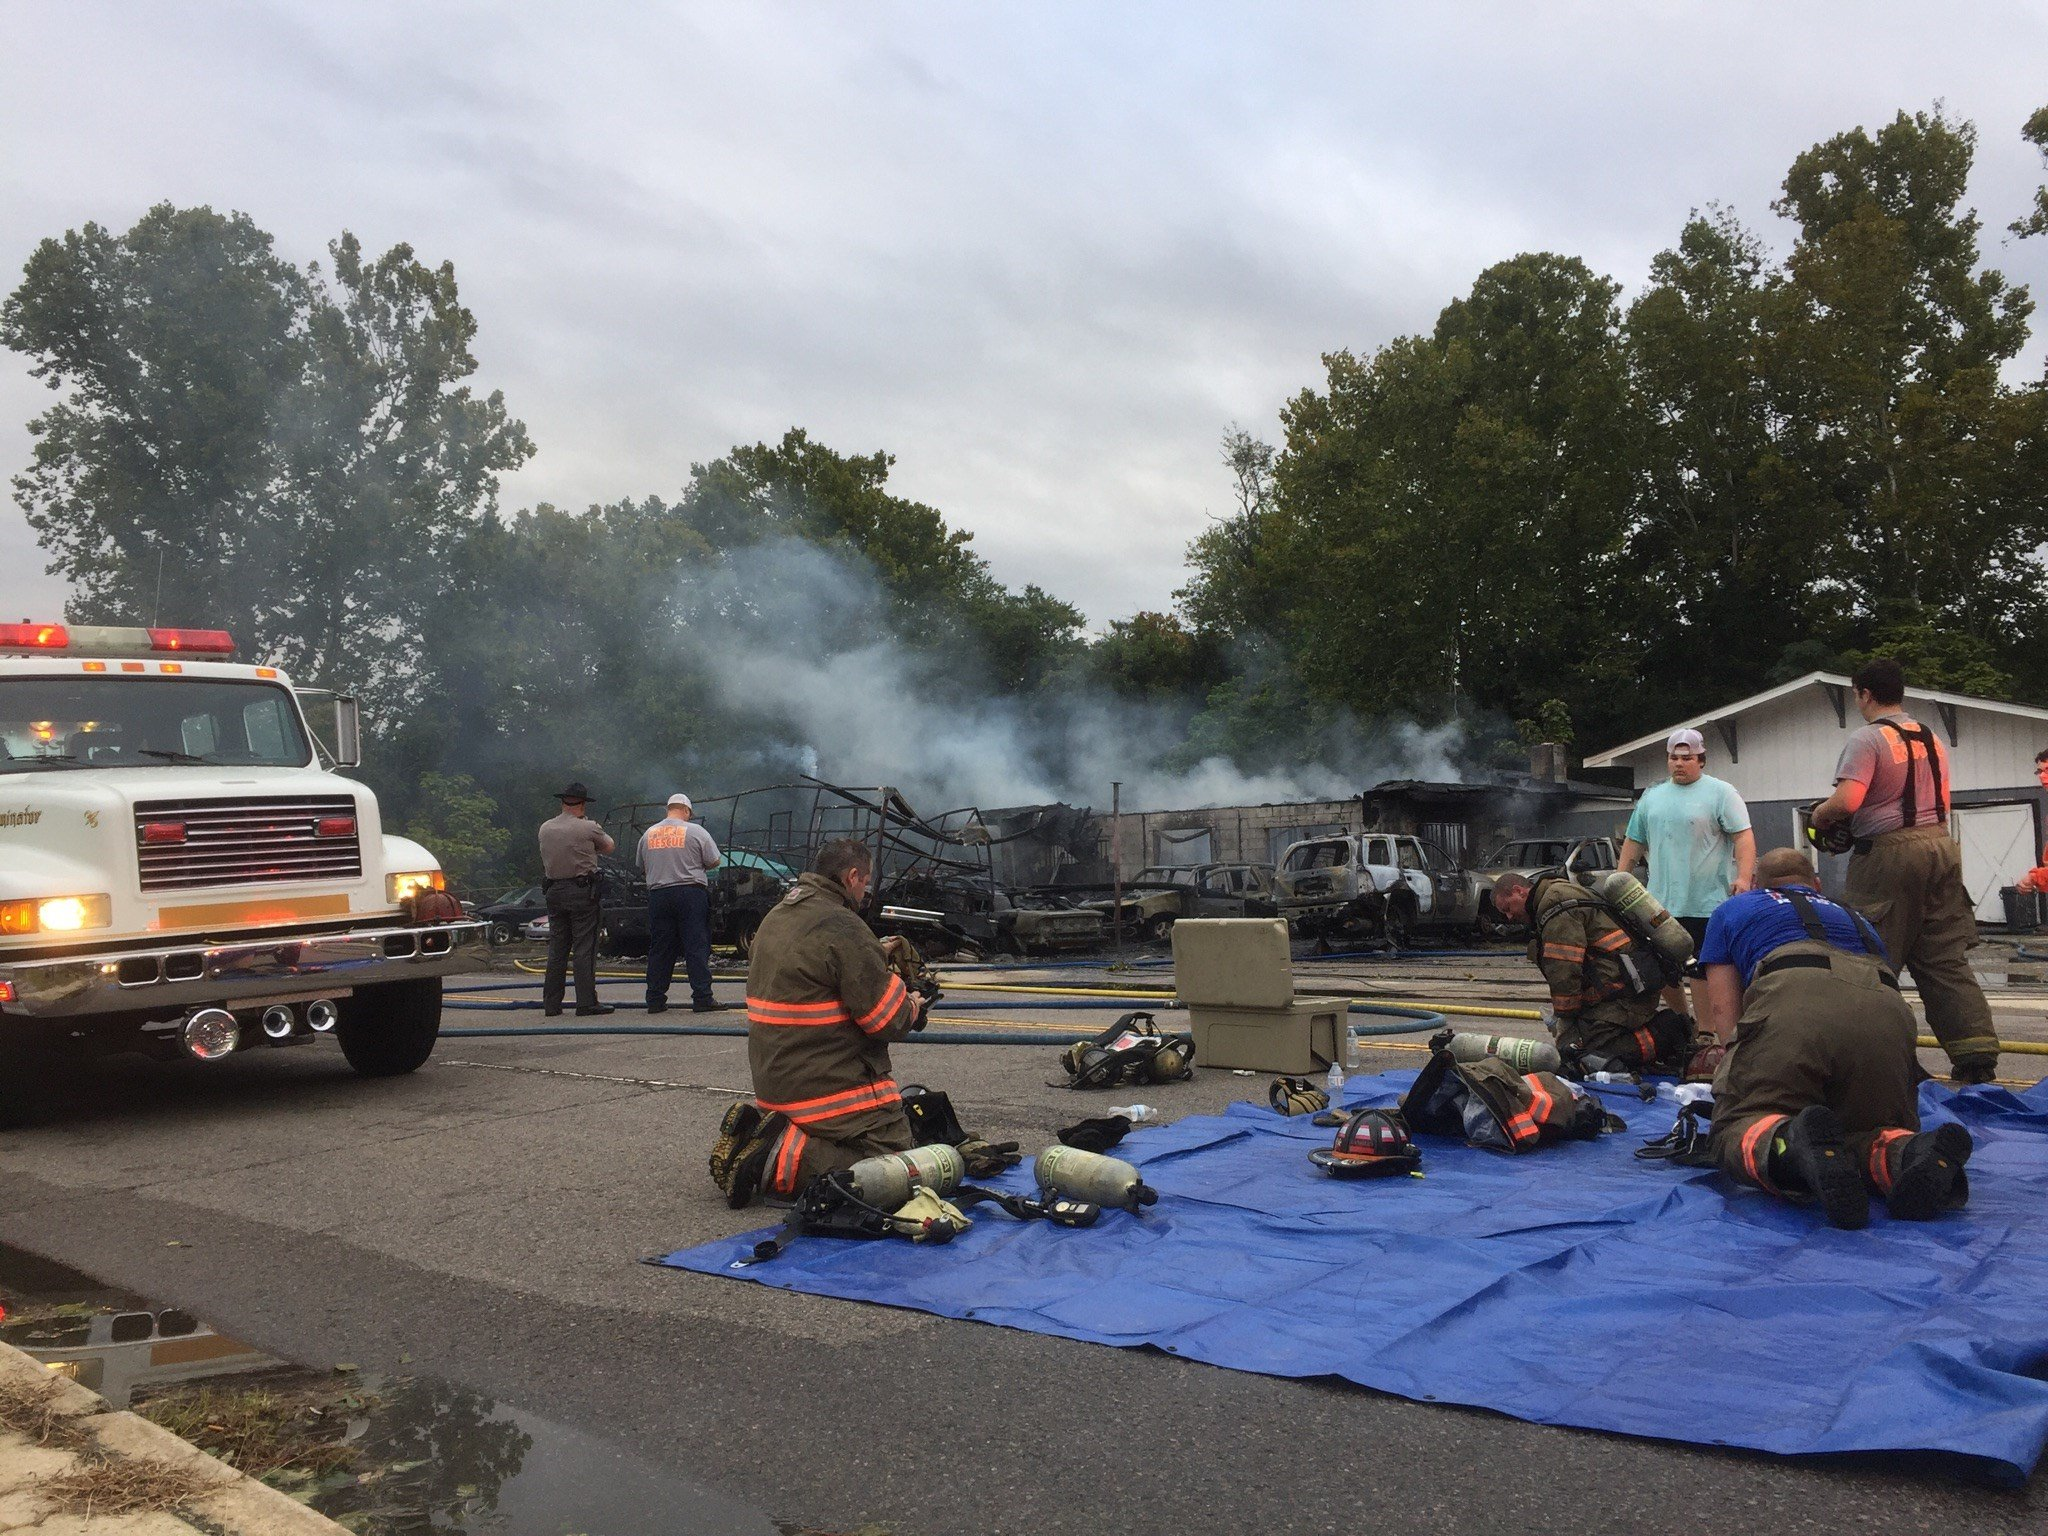 Structure fire in Warrenville, SC; Source: WFXG